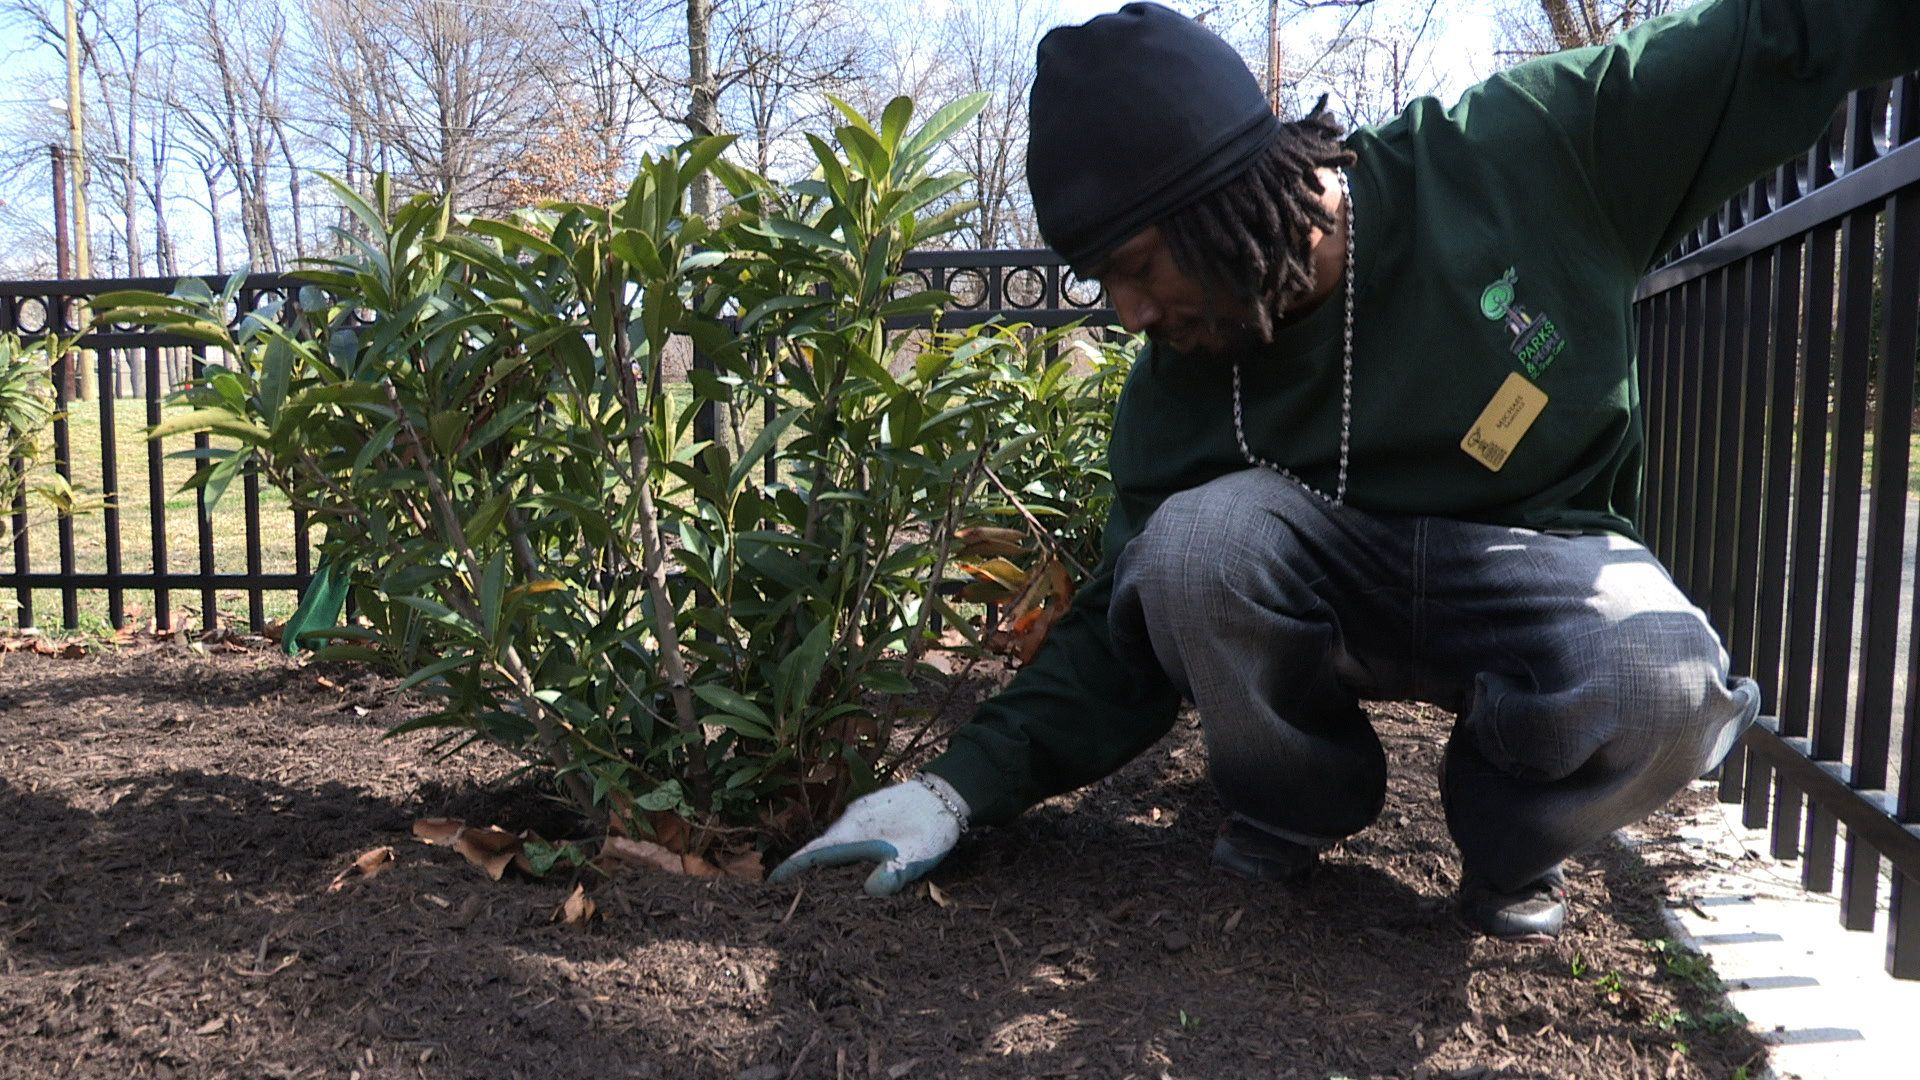 Michael Samuels tends to a plant in a Washington D.C. park as part of a job-training program for residents facing barrie